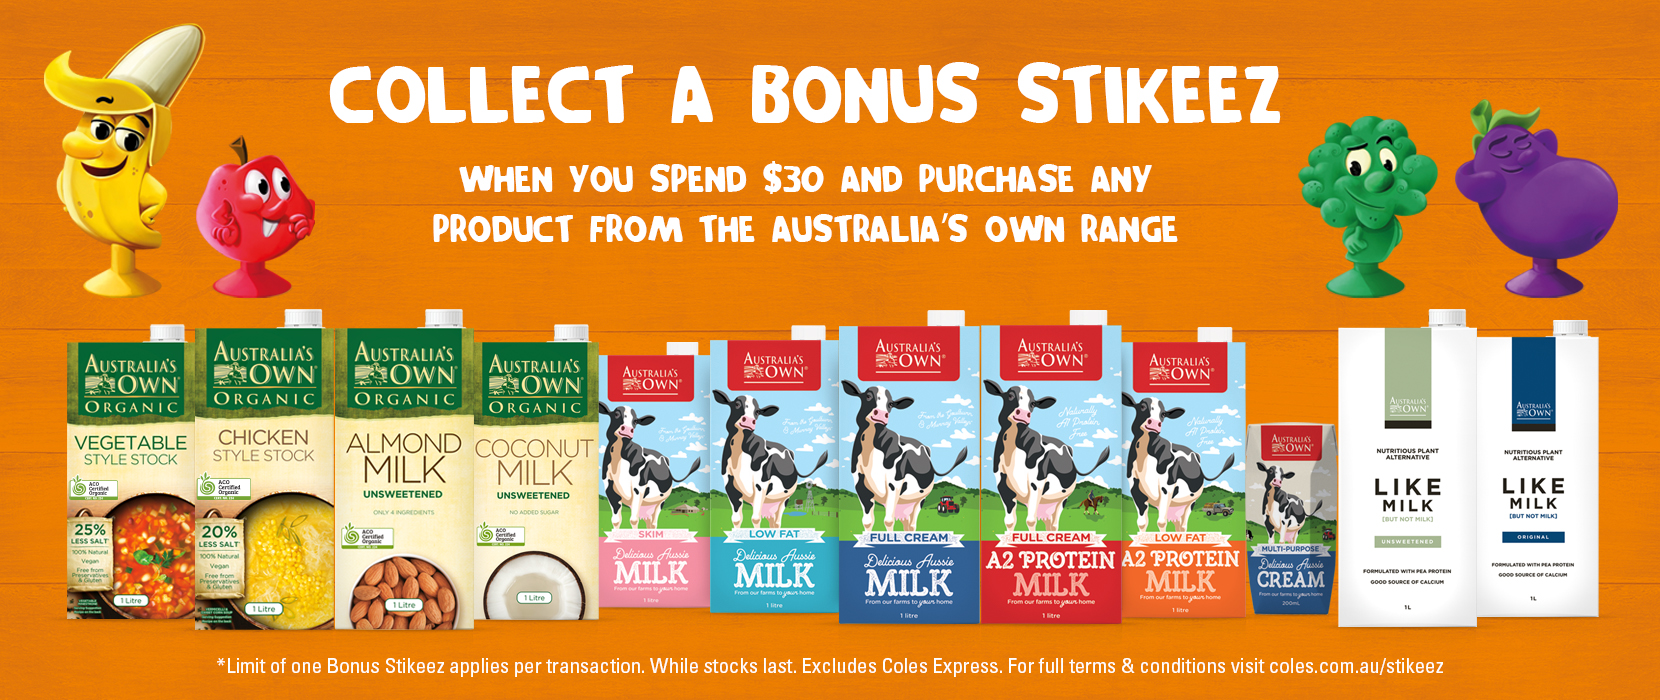 Collect a bonus Stikeez when you purchase any Australia's Own product at Coles